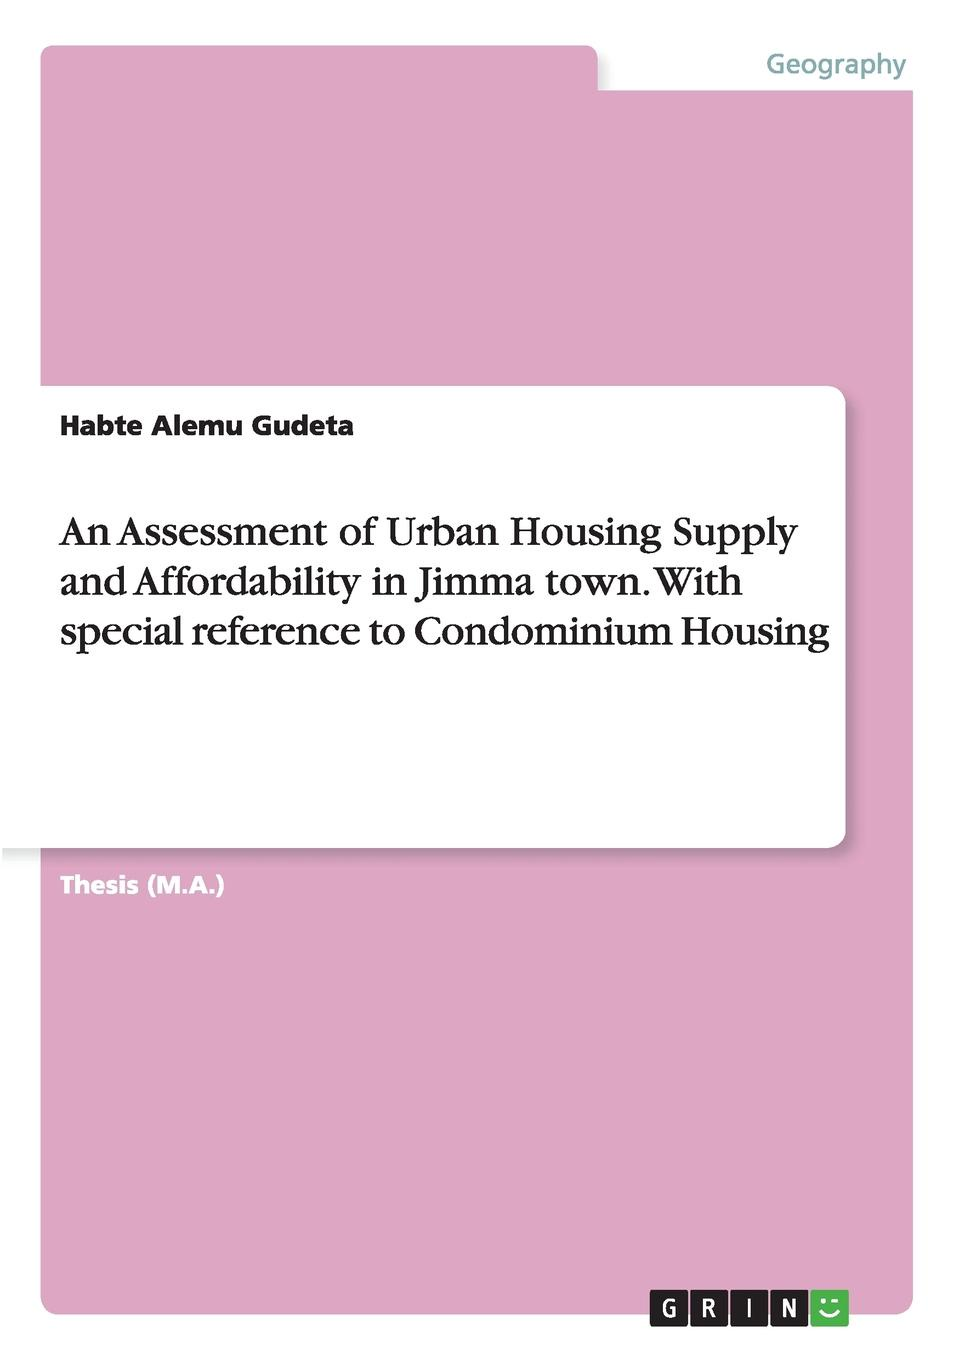 Habte Alemu Gudeta An Assessment of Urban Housing Supply and Affordability in Jimma town. With special reference to Condominium Housing tom woolley low impact building housing using renewable materials